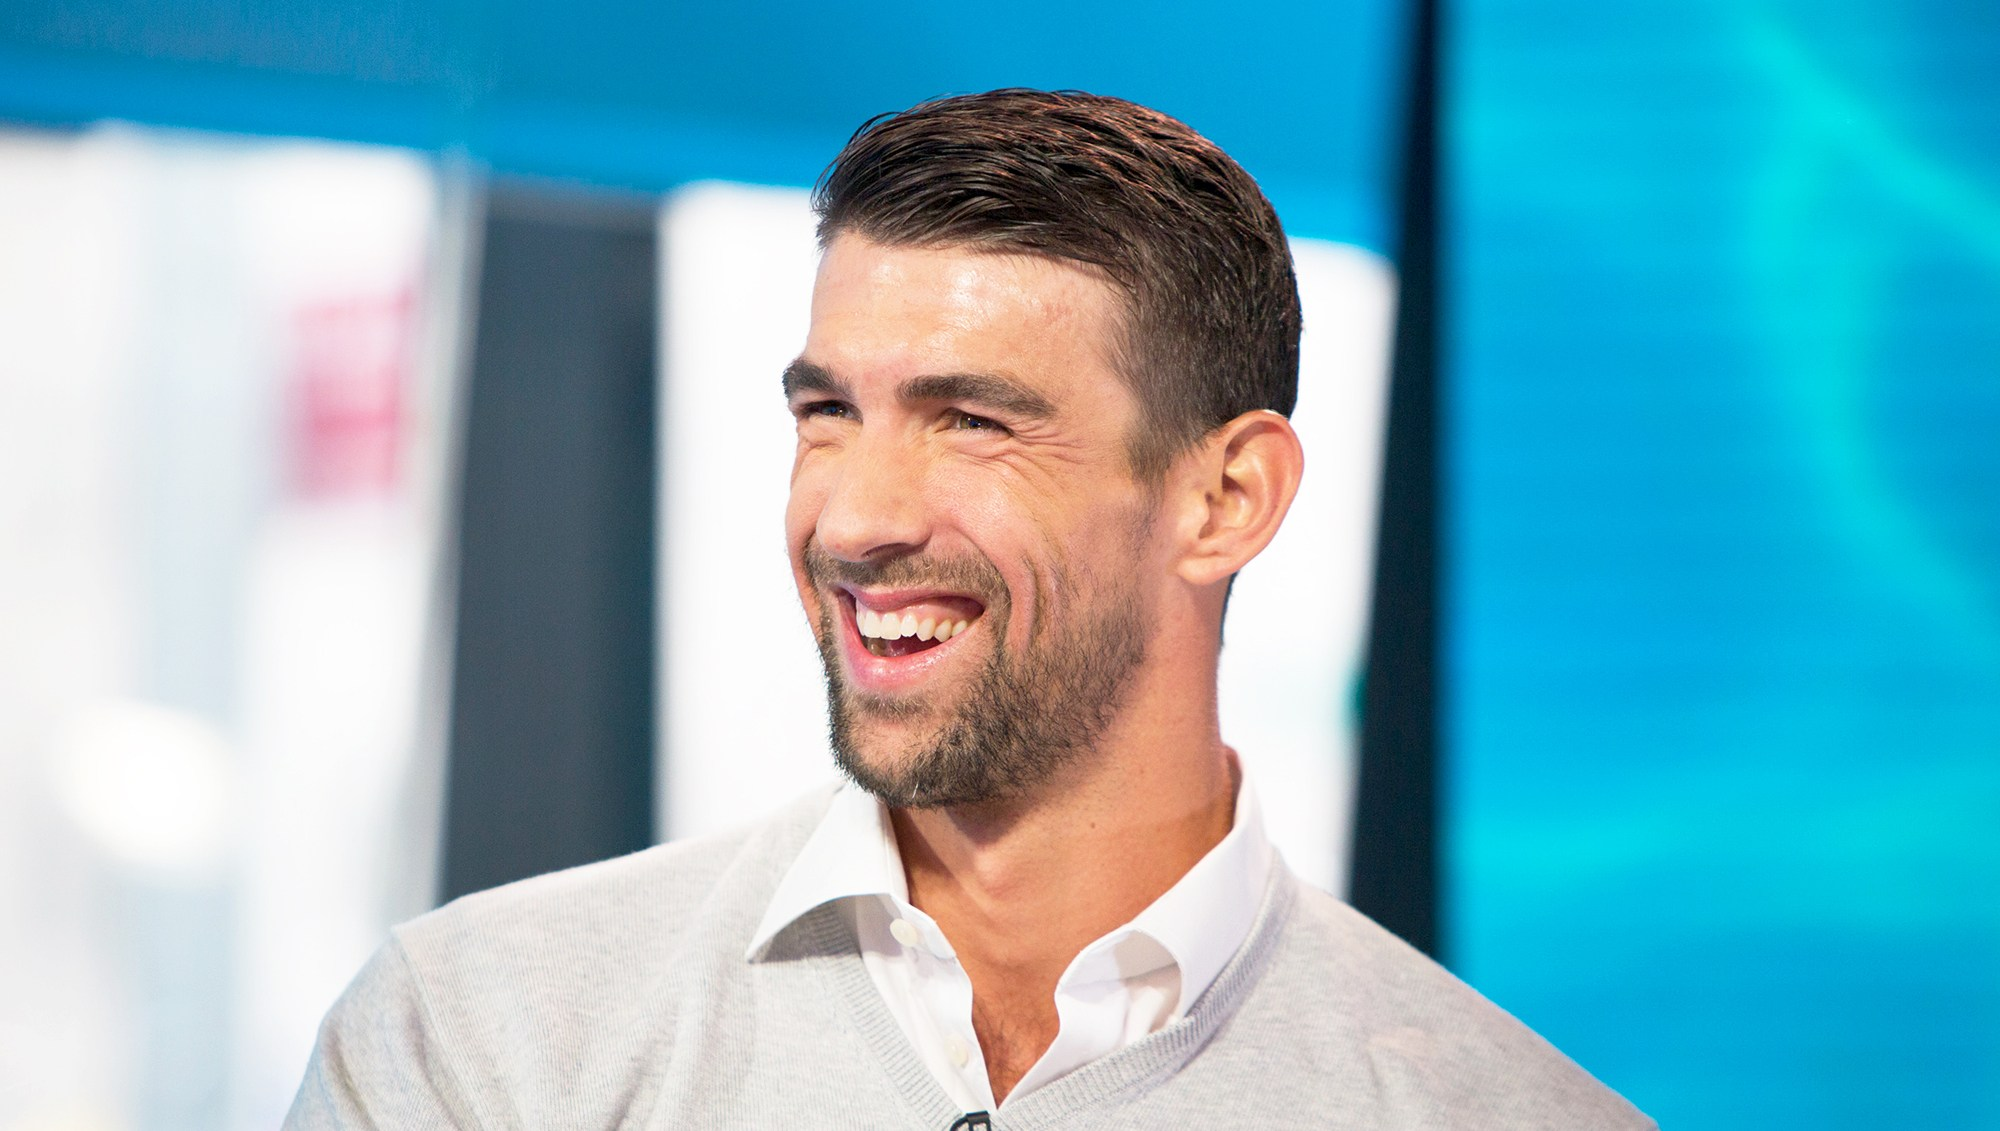 Michael Phelps on 'Today' show